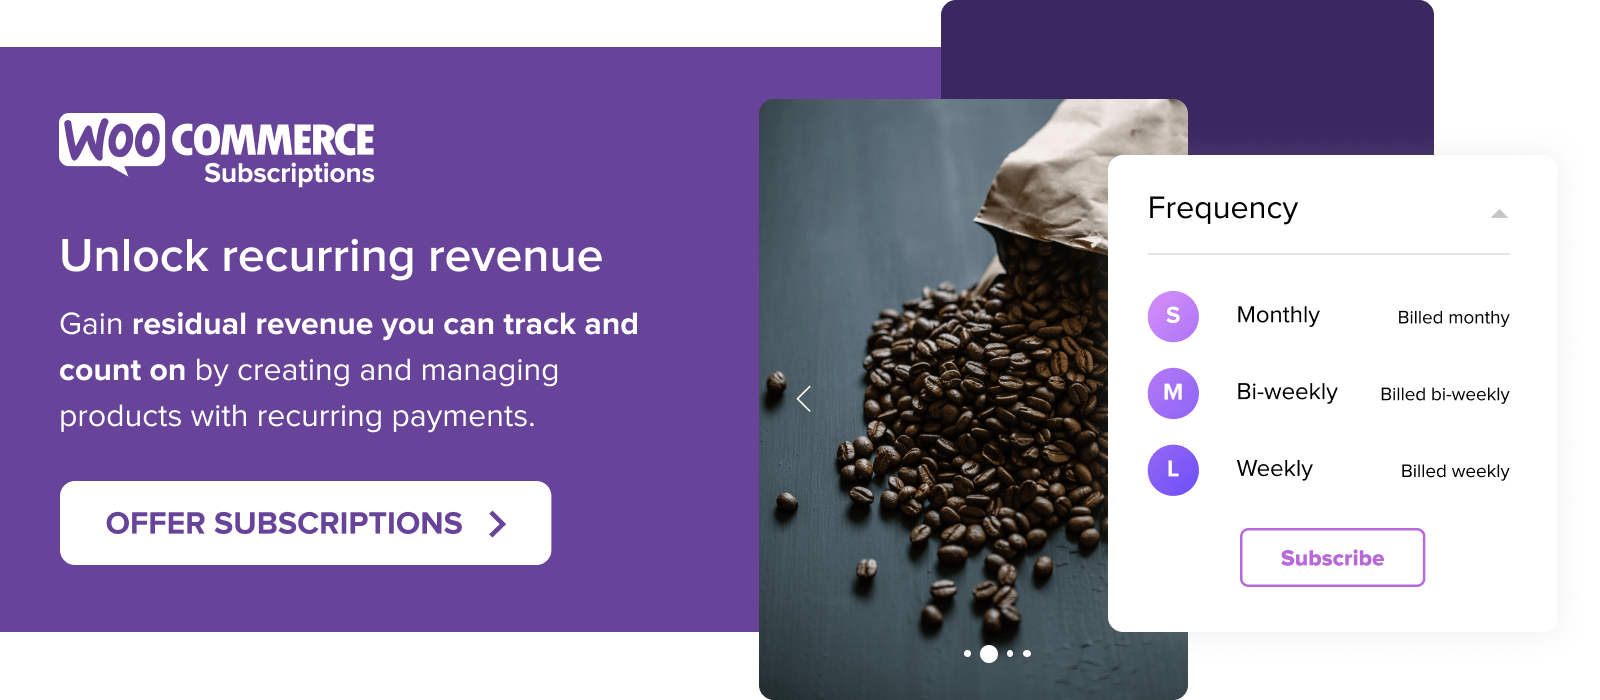 Unlock recurring revenue with WooCommerce Subscriptions